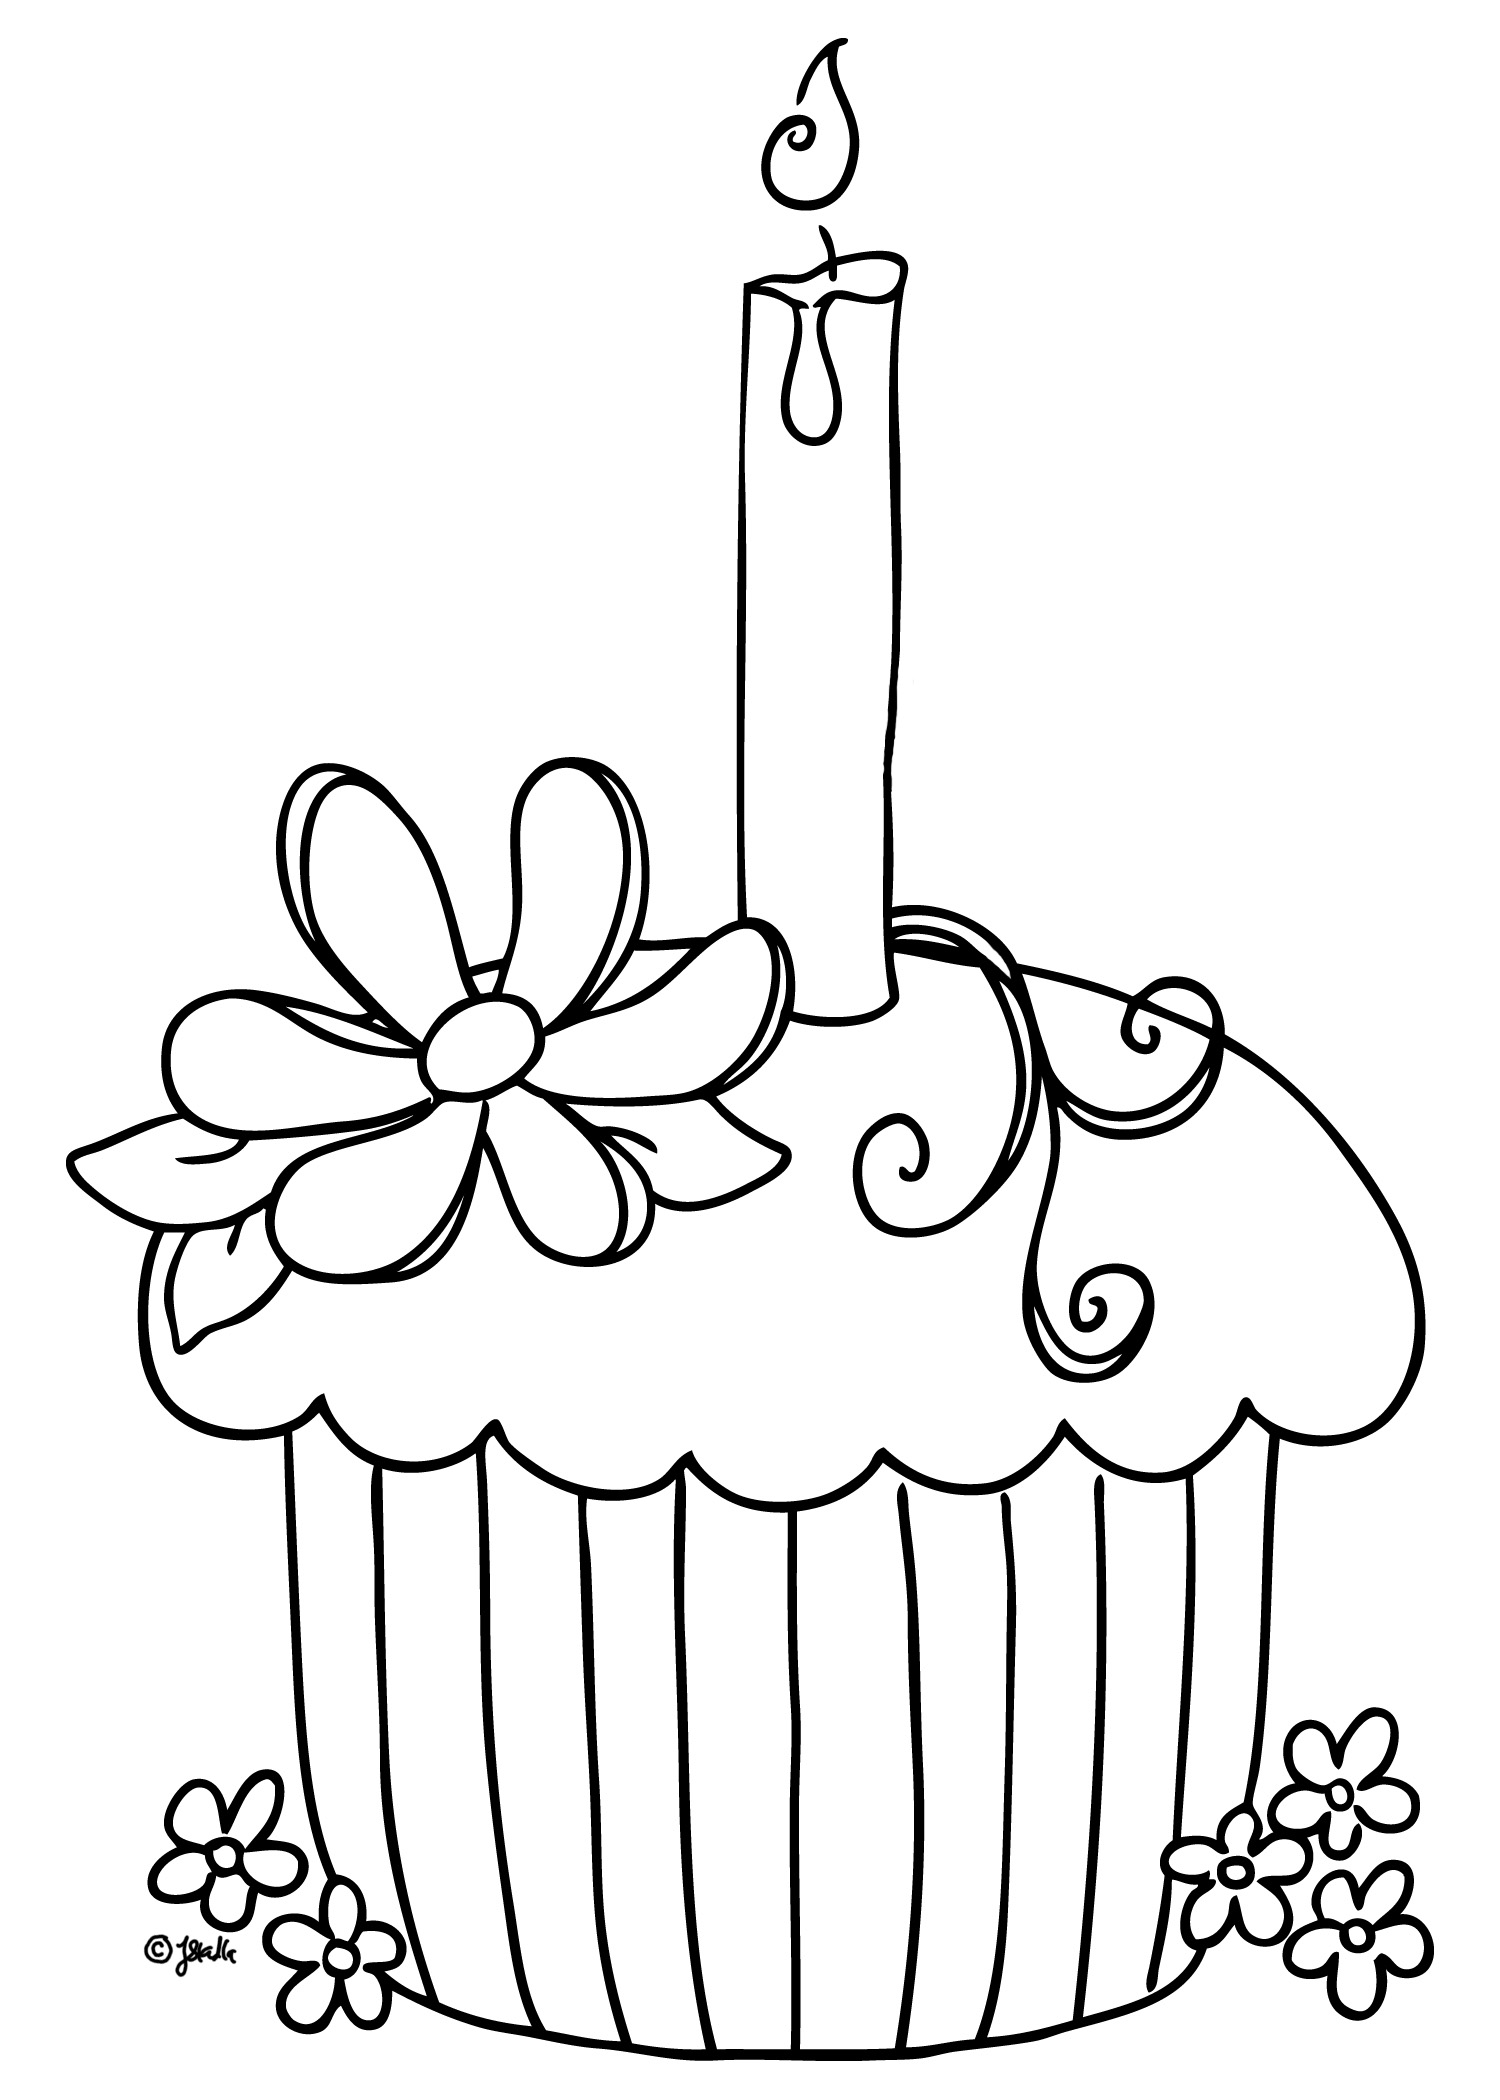 cupcake coloring pages to print - Cupcakes Coloring Pages